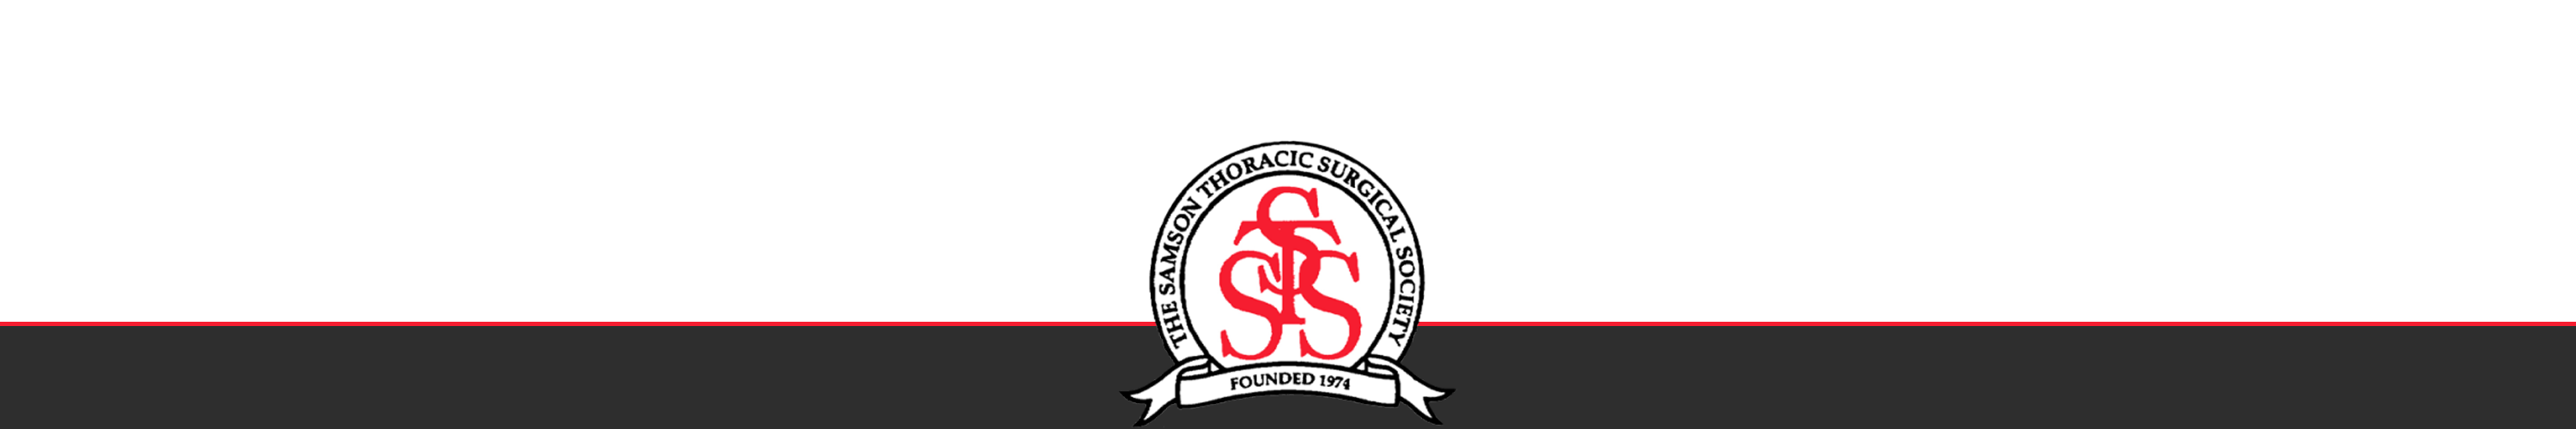 Western Thoracic Surgical Association